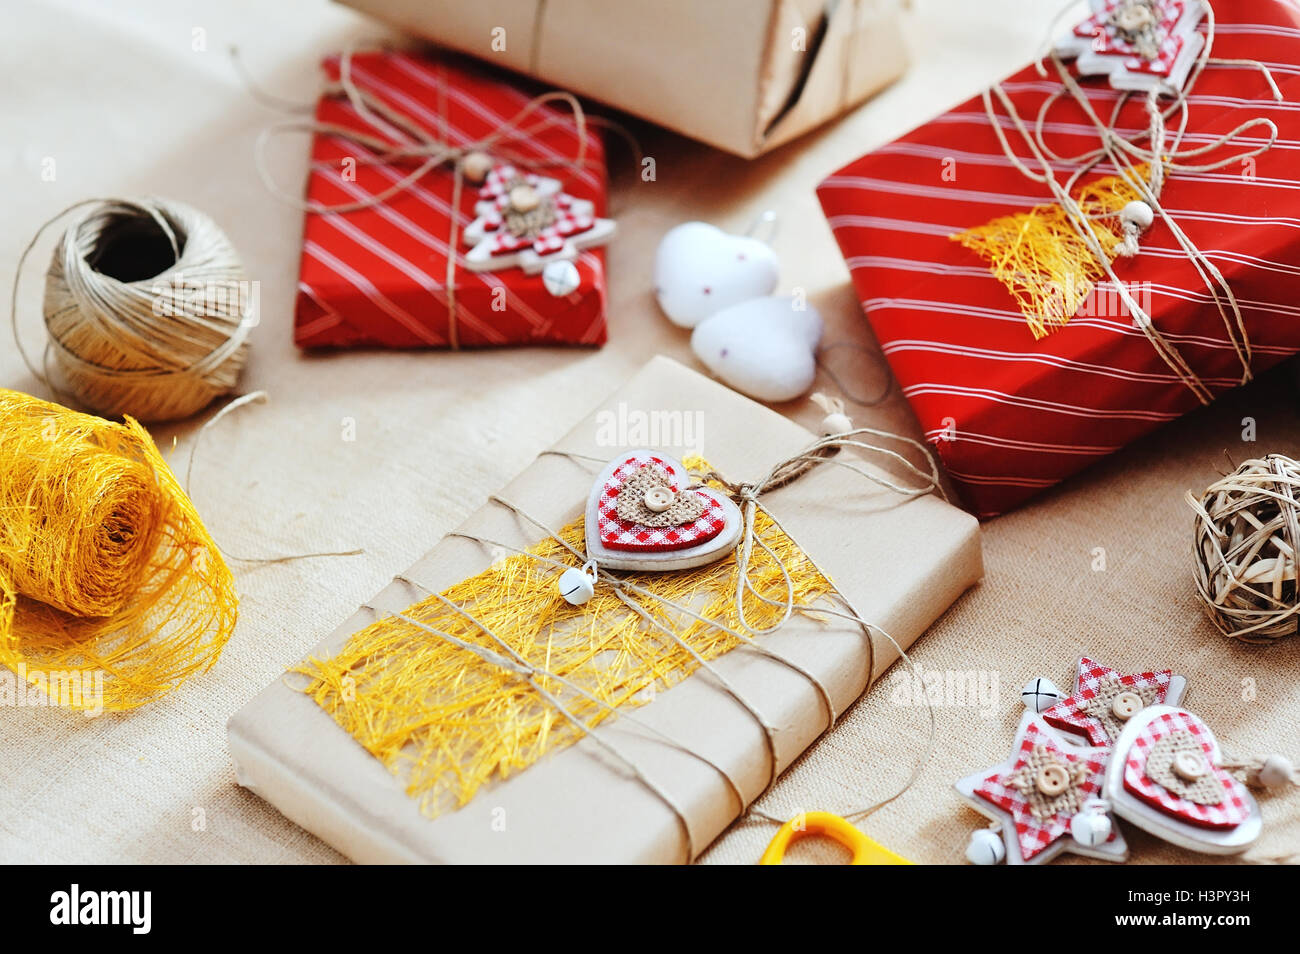 Gift boxes for Christmas and funny tree decorations Stock Photo ...